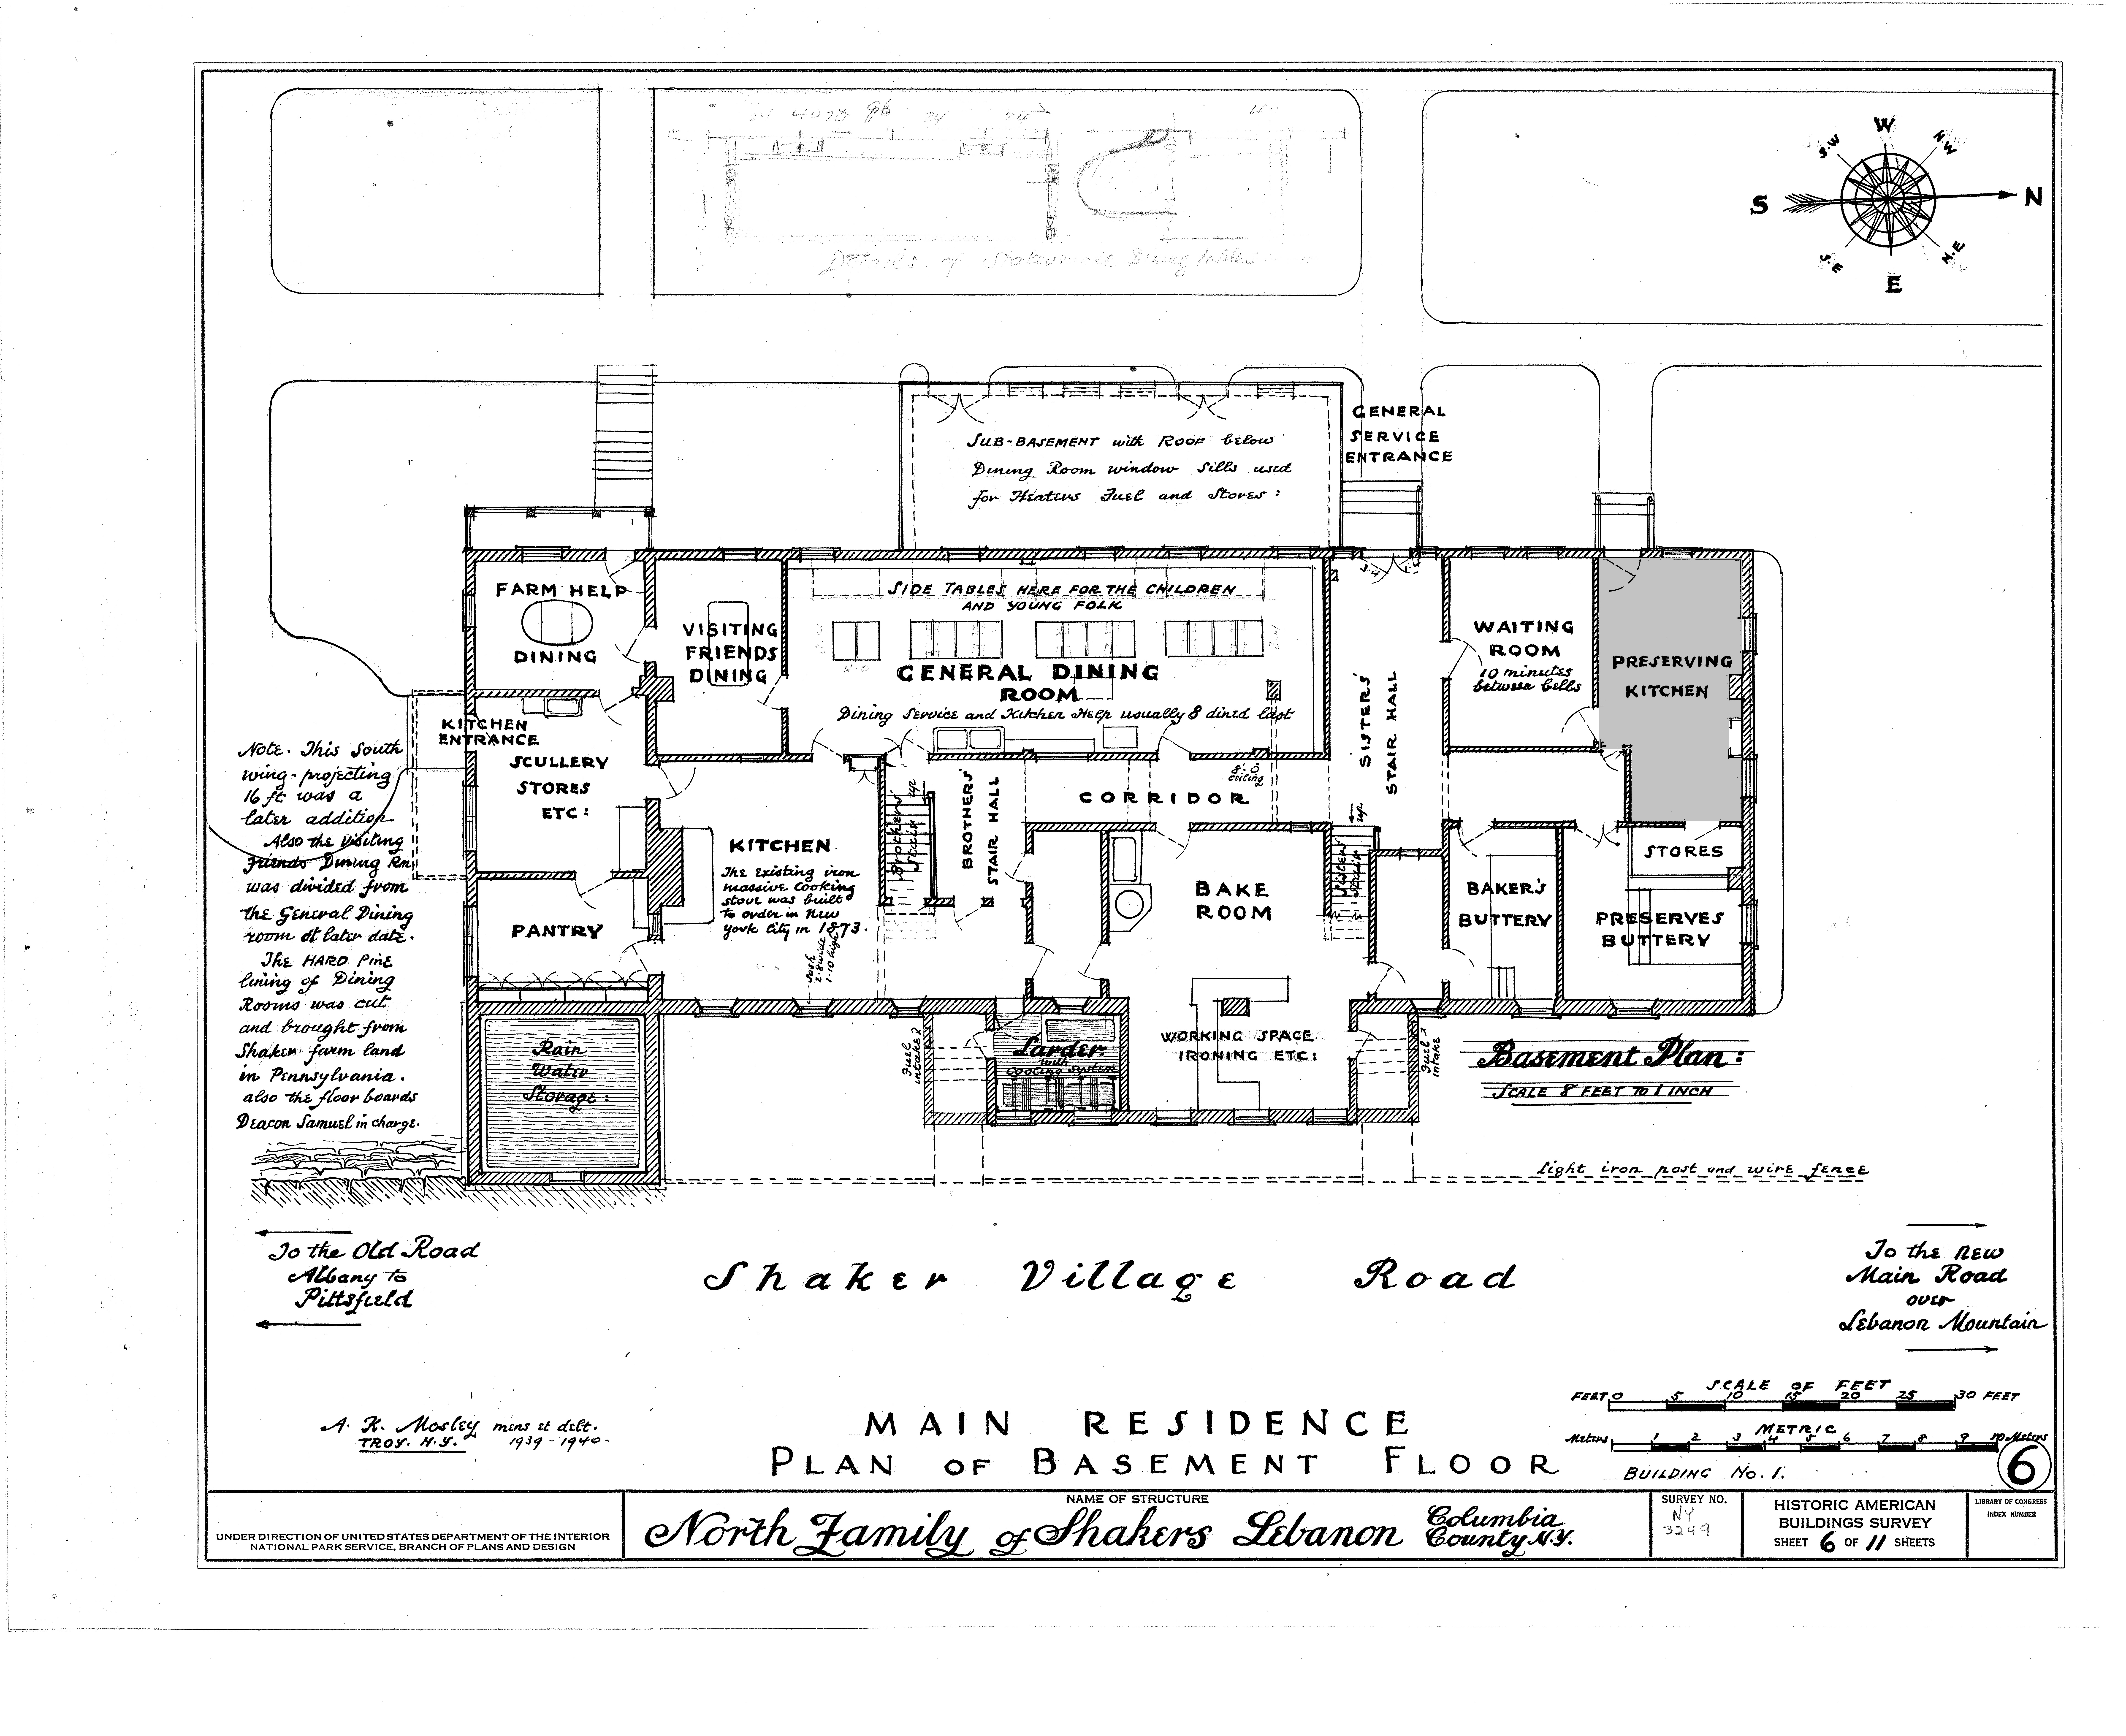 Ground Floor Plan, Dwelling, North Family, Mount Lebanon, NY, 1939-1940, Historic American Buildings Survey